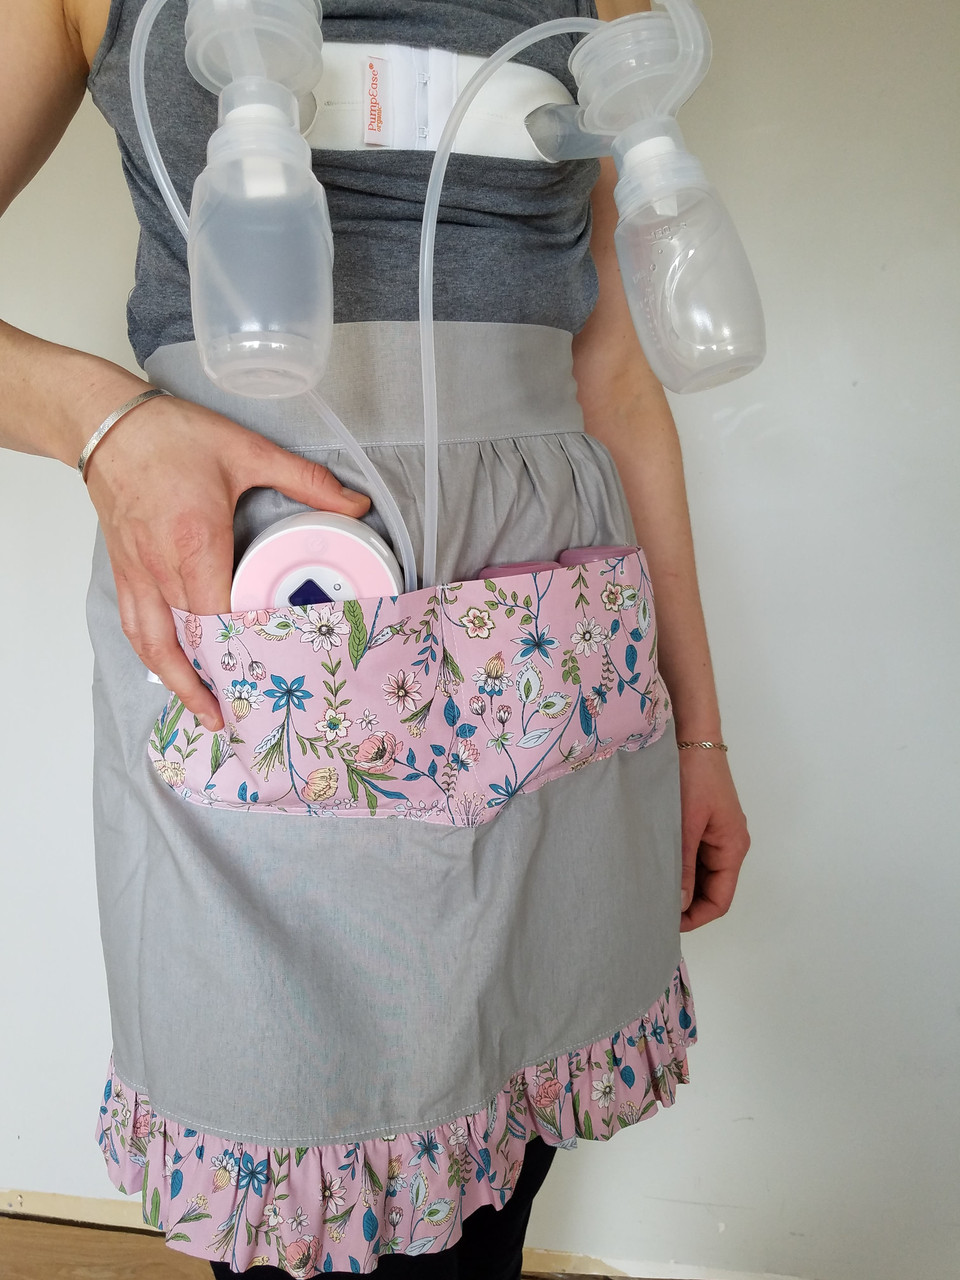 Hands free pumping or household apron.